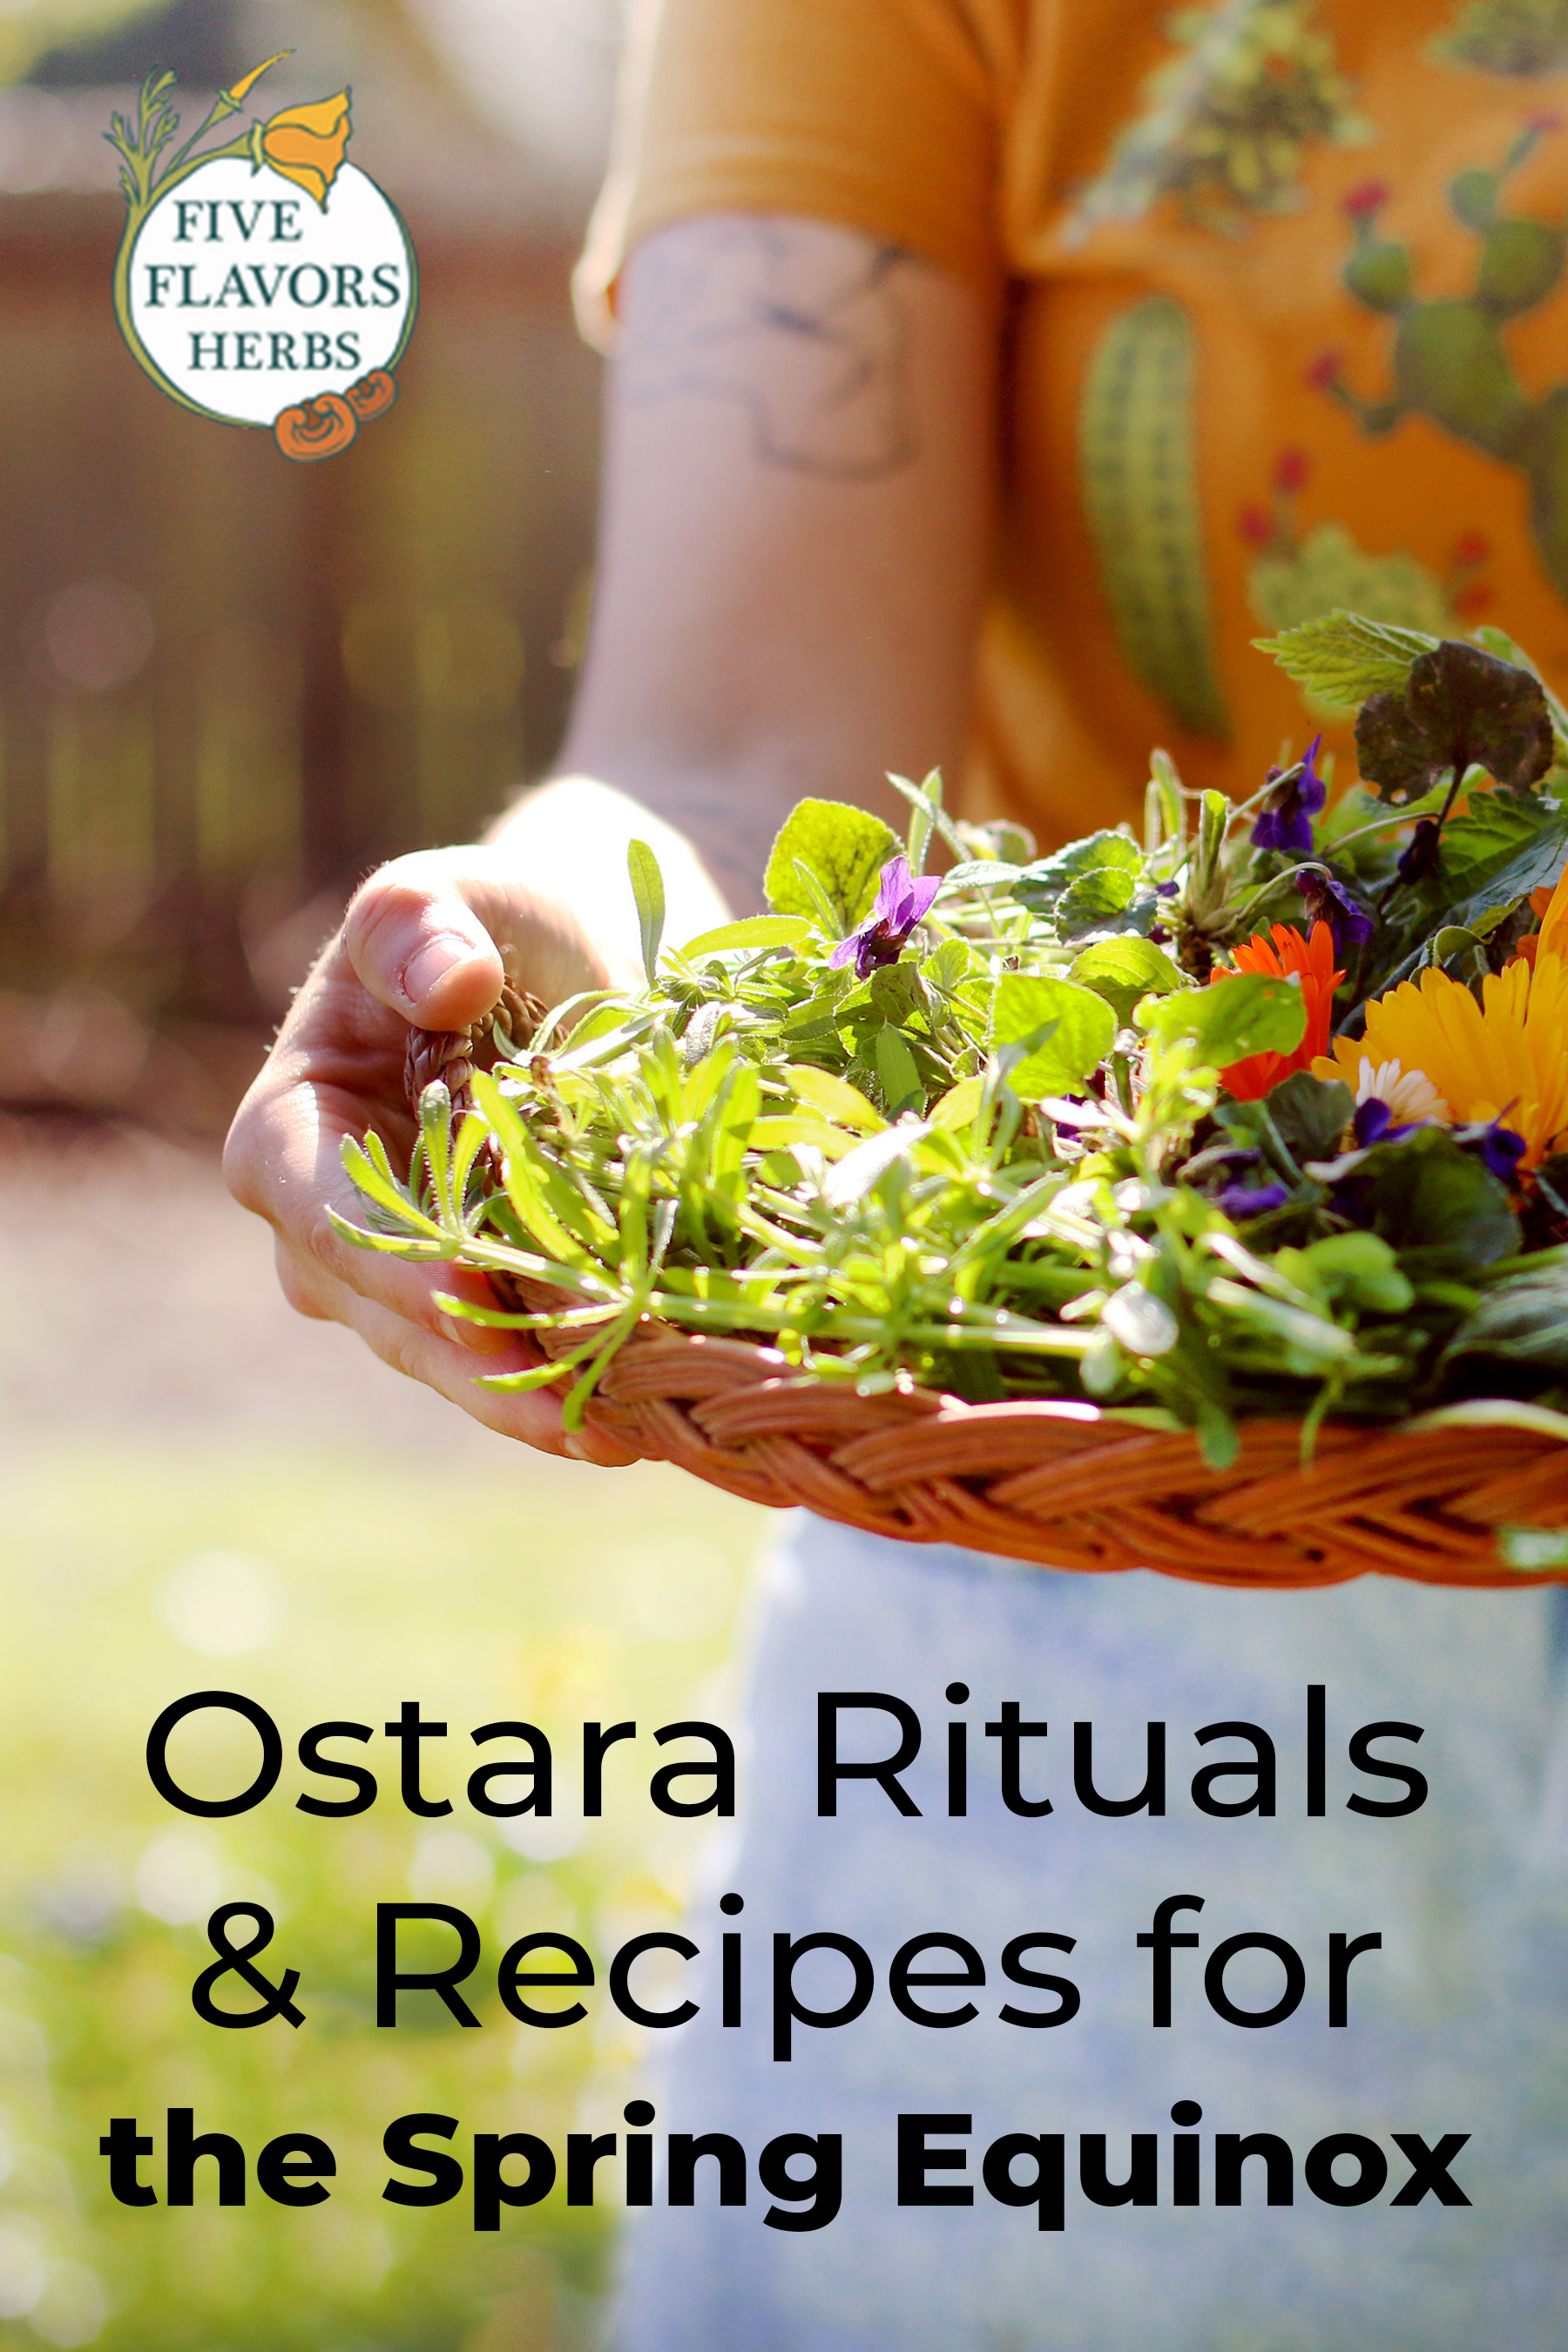 ostara-spring-equinox-herbs-and-rituals-pin-with-woman-holding-basket-of-fresh-flowers